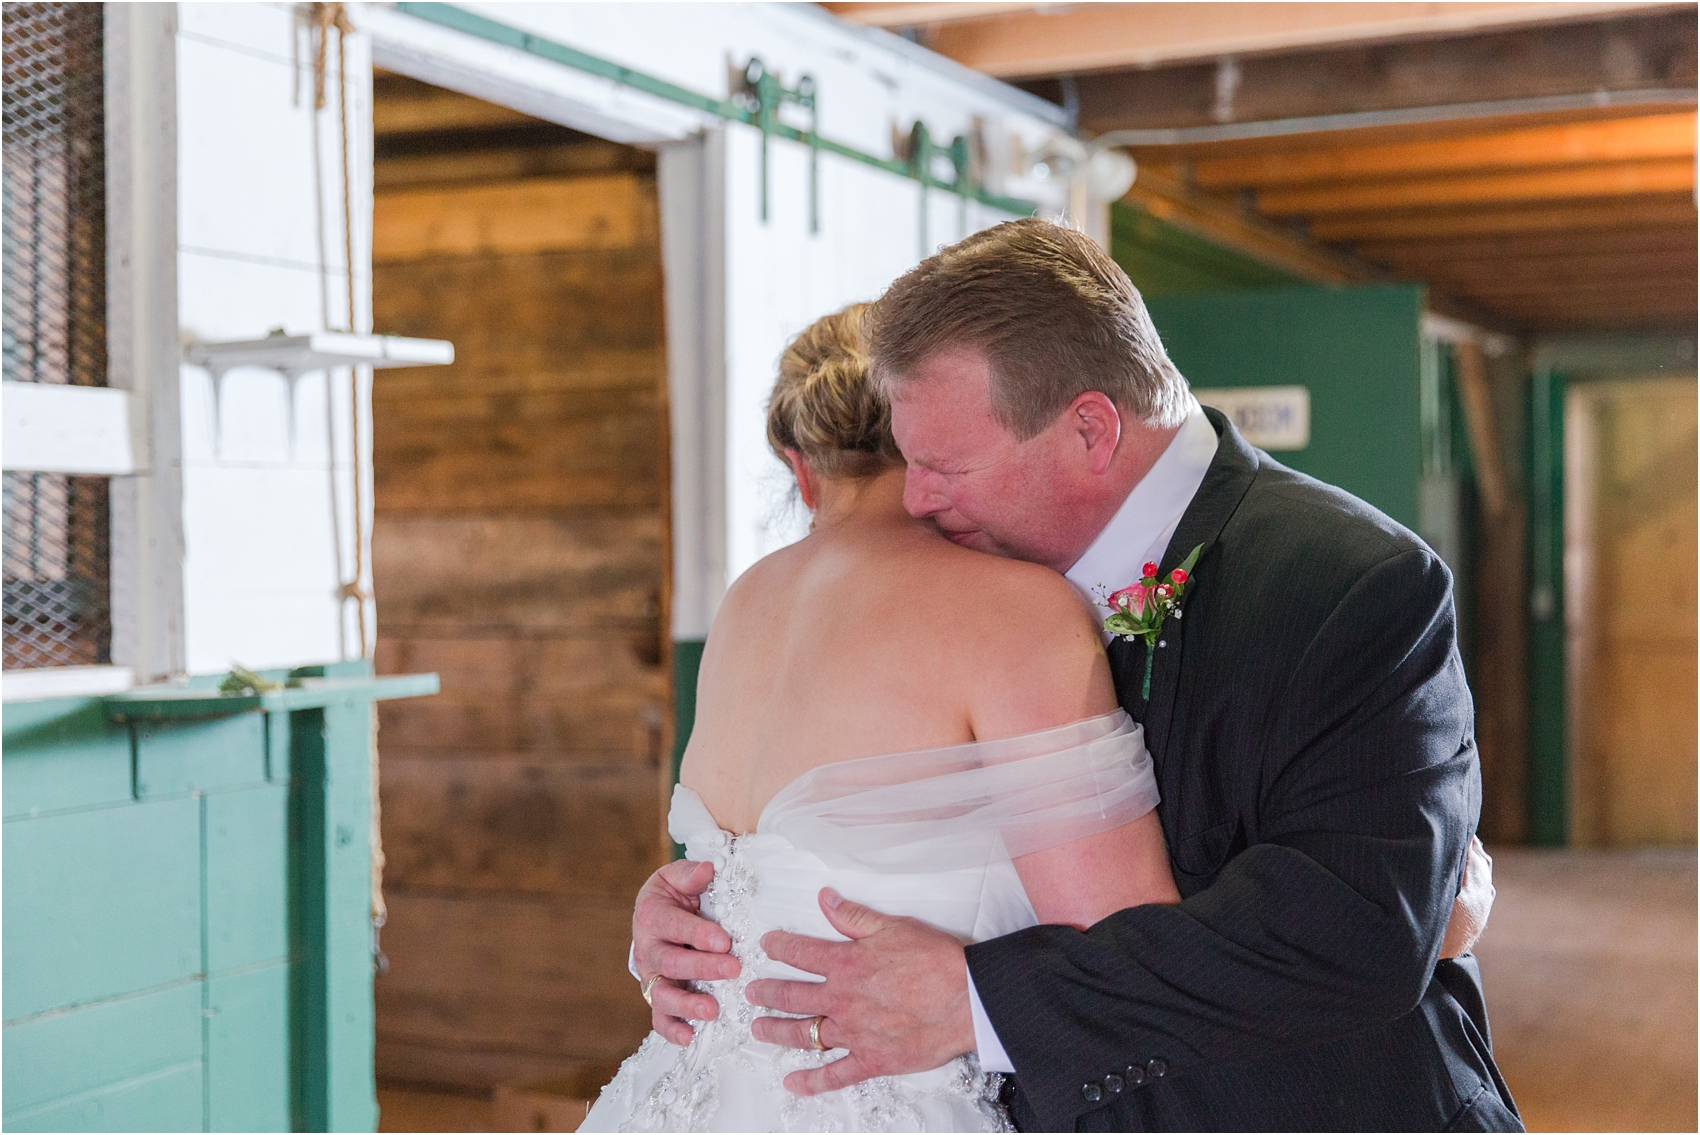 father-and-bride-share-emotional-first-look-on-wedding-day-photos-in-detroit-michigan-by-courtney-carolyn-photography_0043.jpg